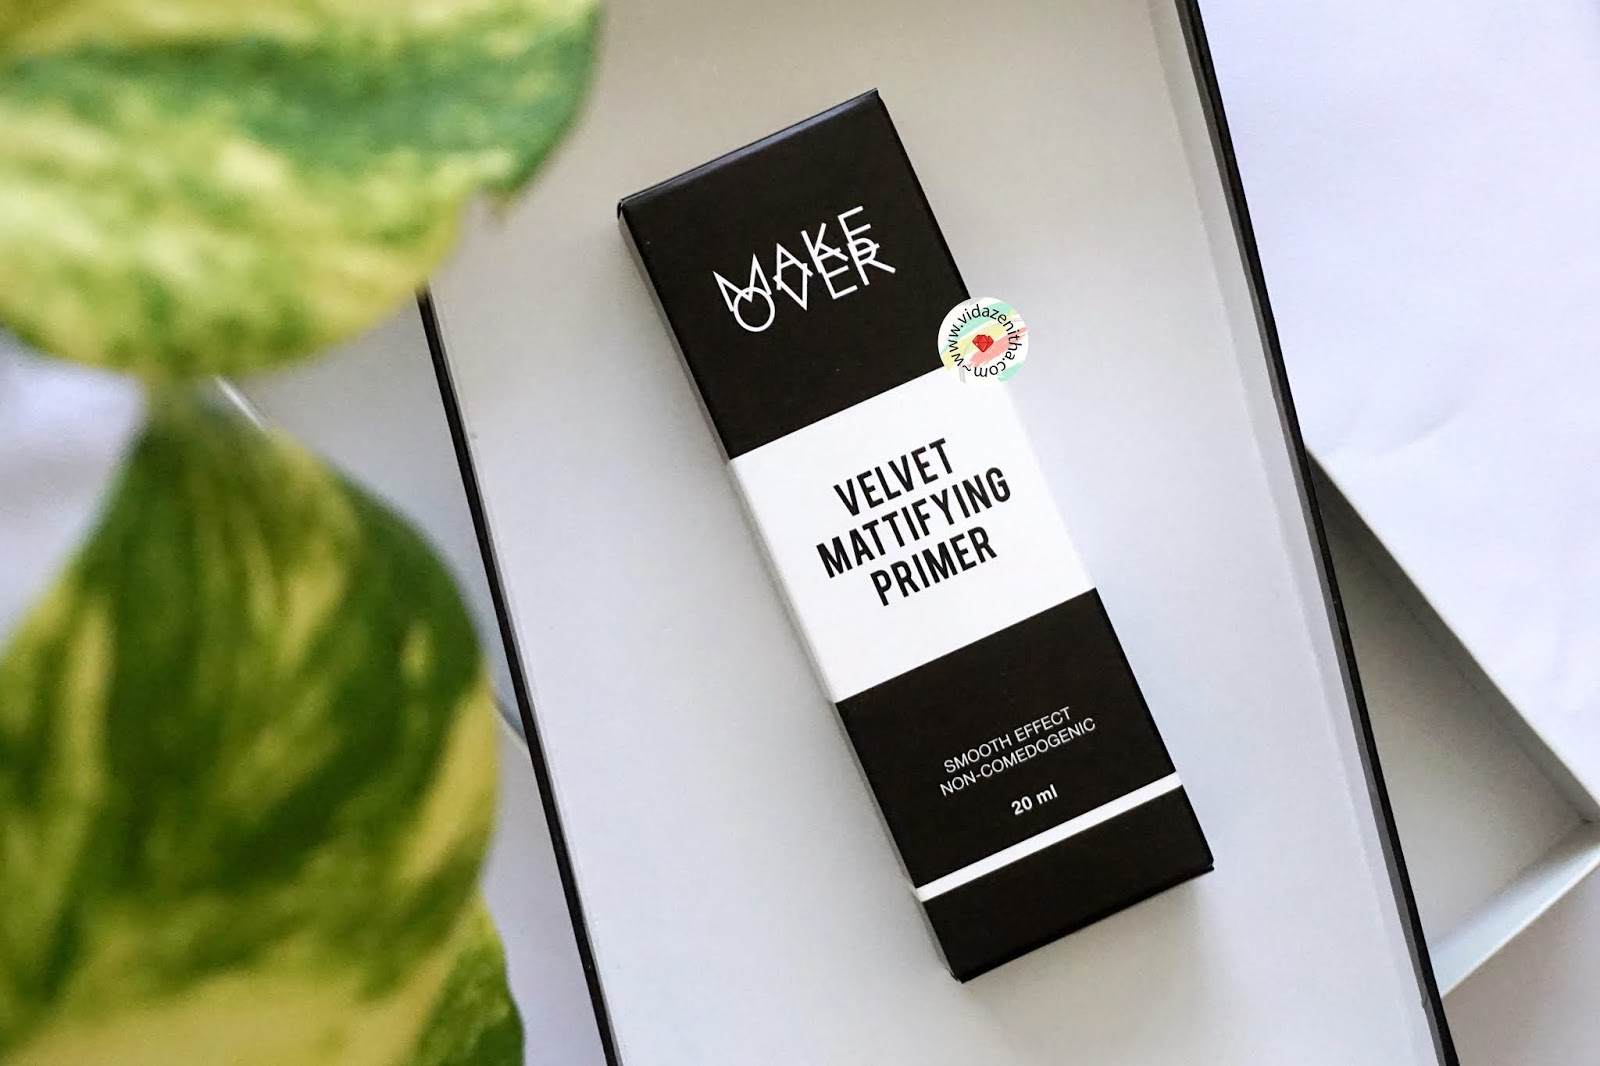 Review Make Over Velvet Mattifying Primer | vidazenitha.com/2018/08/review-make-over-velvet-mattifying-primer.html